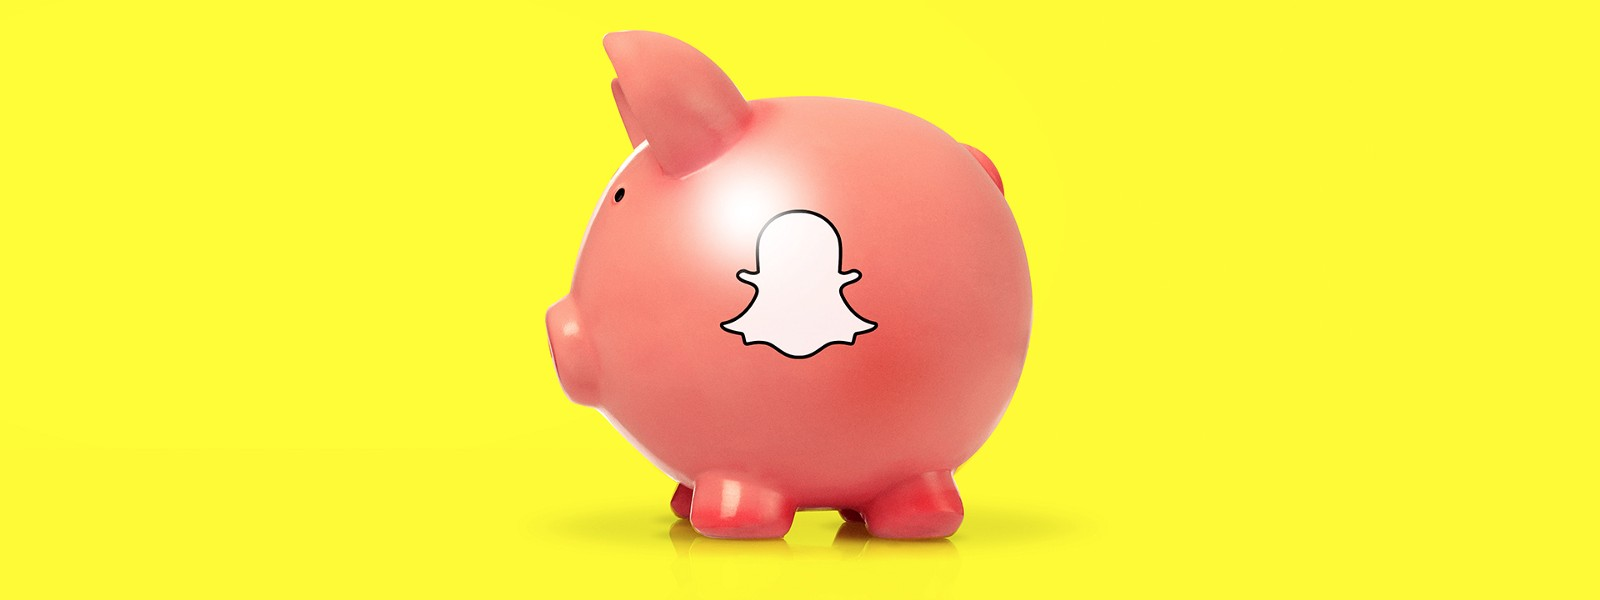 The Time To Buy Snapchat Is Now, And I'm Not Talking About Their Stock (i'm  Bullish On That Too, But That's A Different Story) I'm Talking About Snap  Ads: